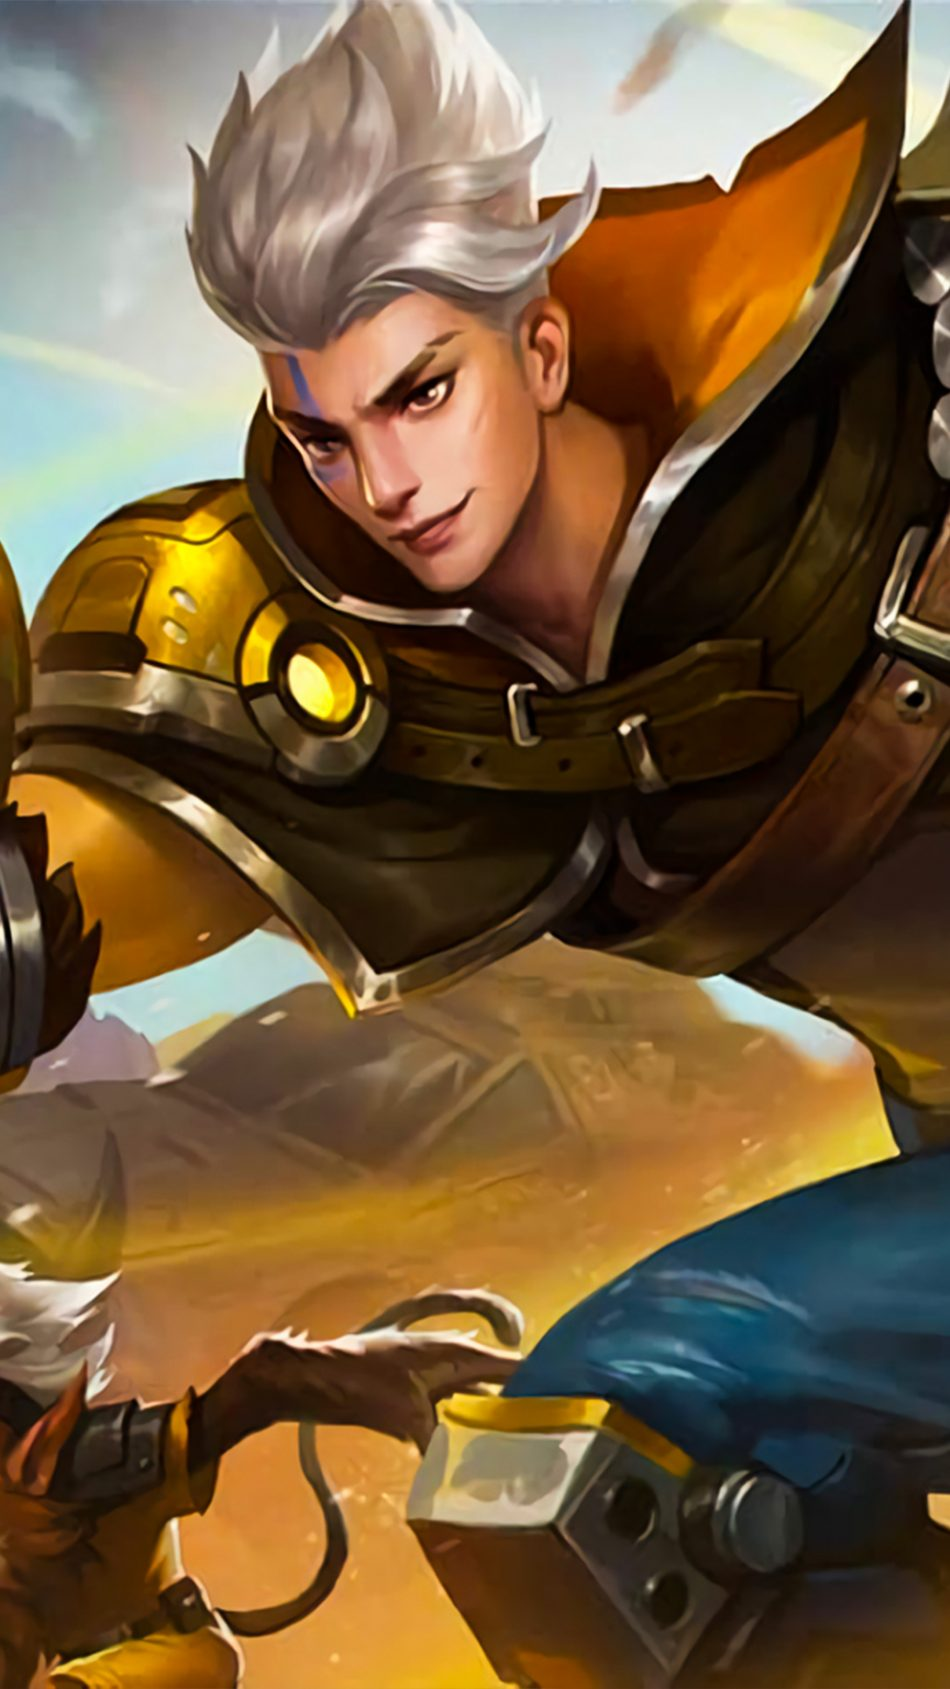 Download Claude Golden Bullet Mobile Legends Free Pure 4k